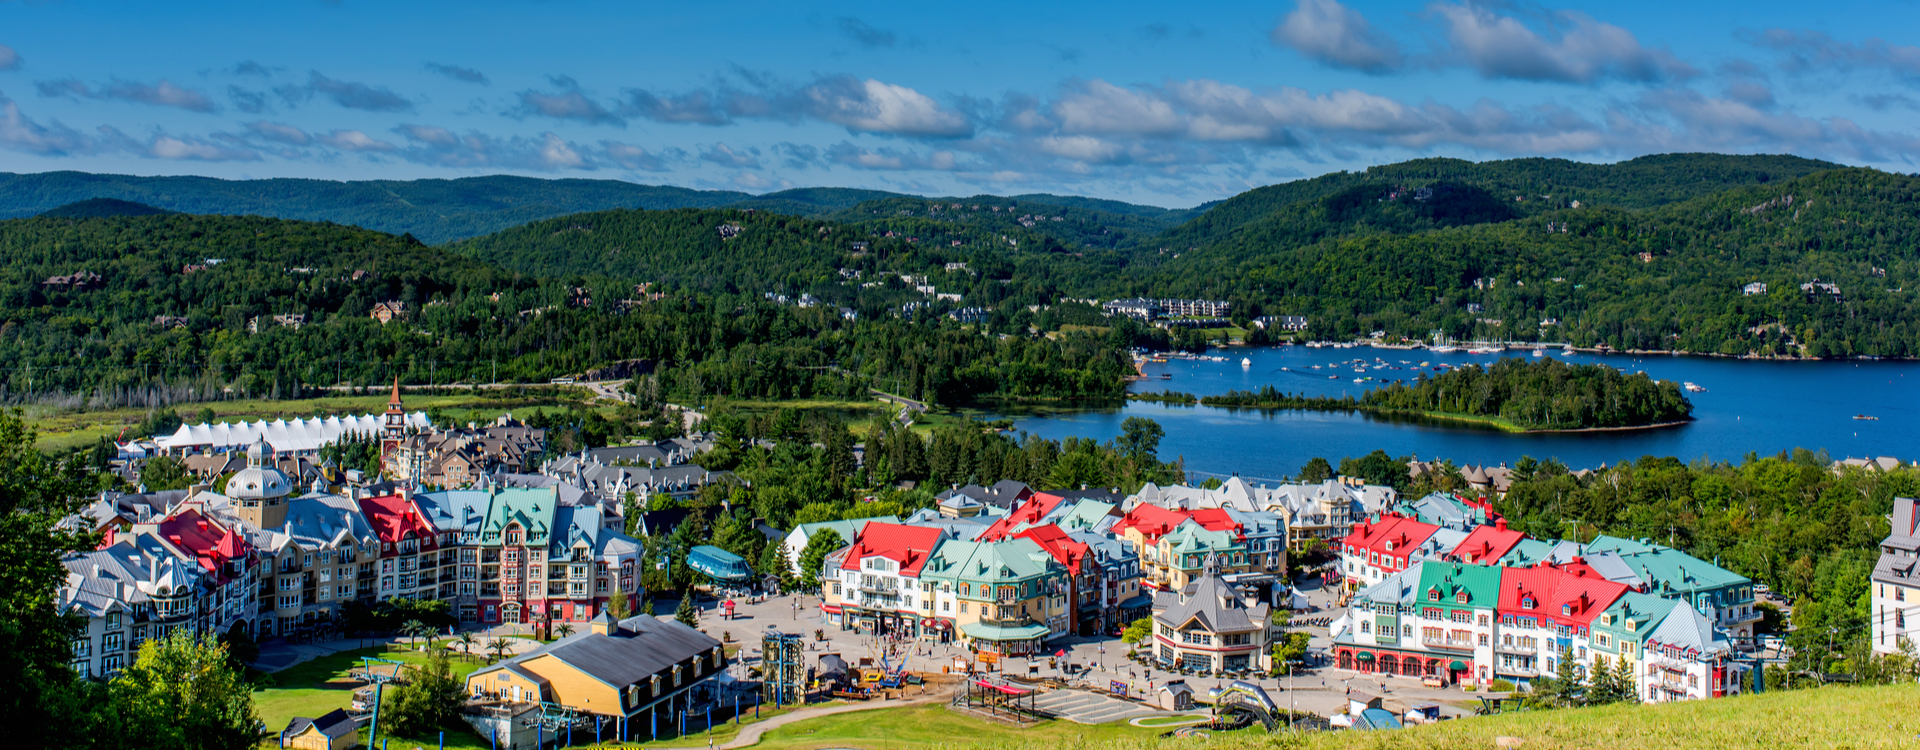 mont-tremblant-summer-village-lake